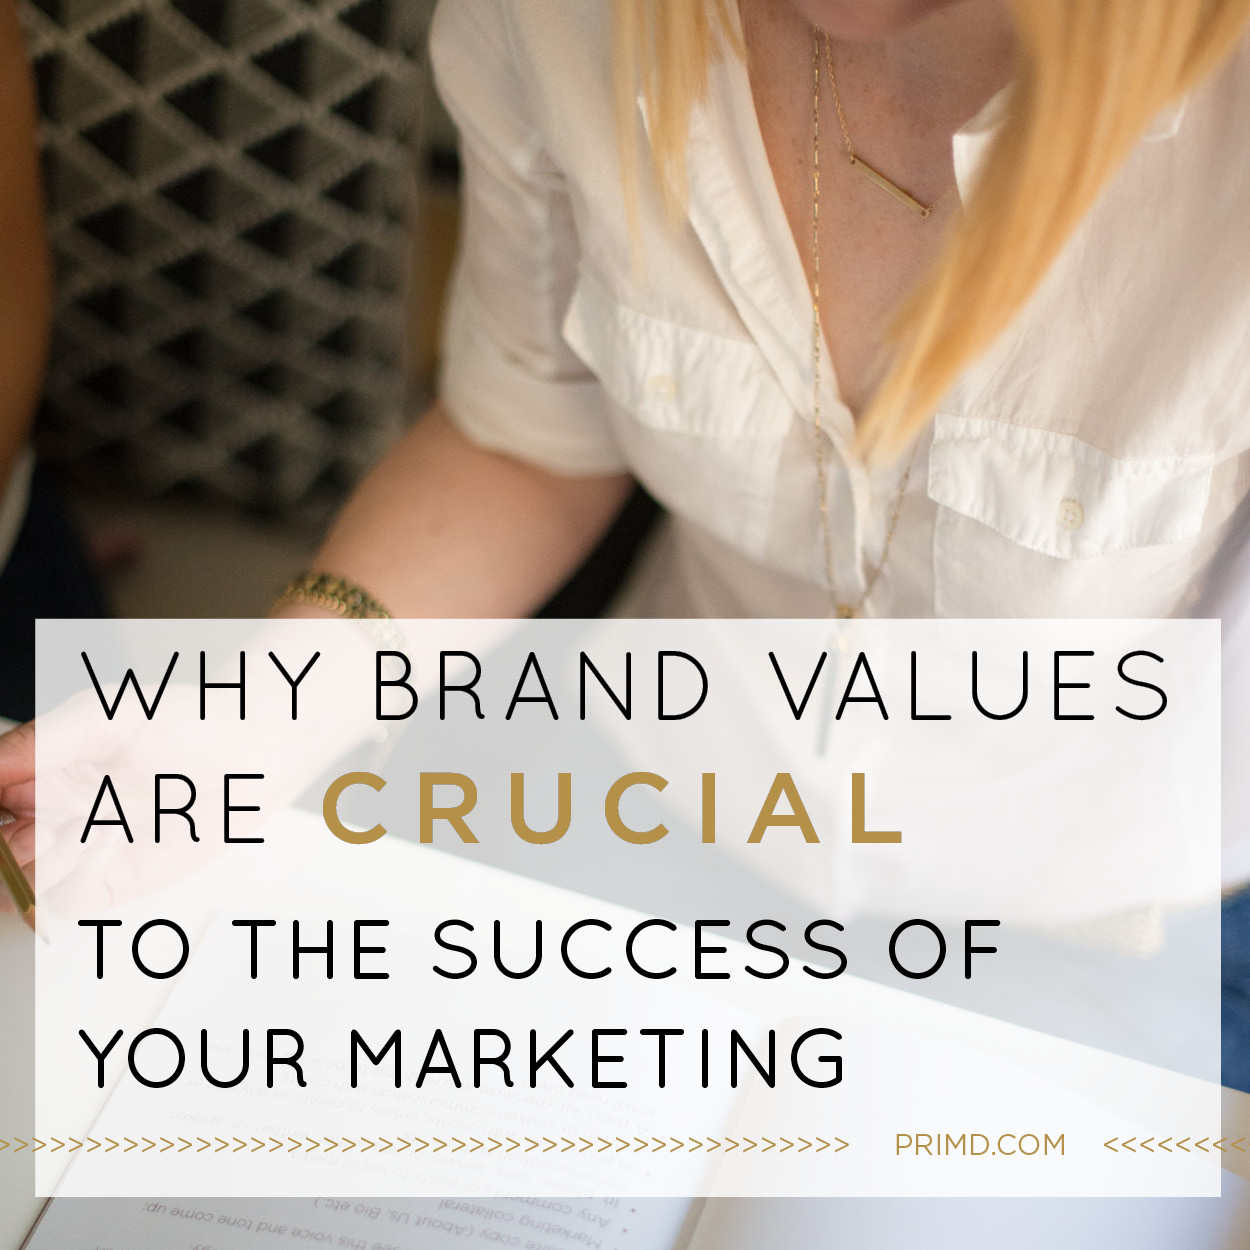 Prim'd Marketing - Why Brand values Are Crucial To The Success Of Your Marketing